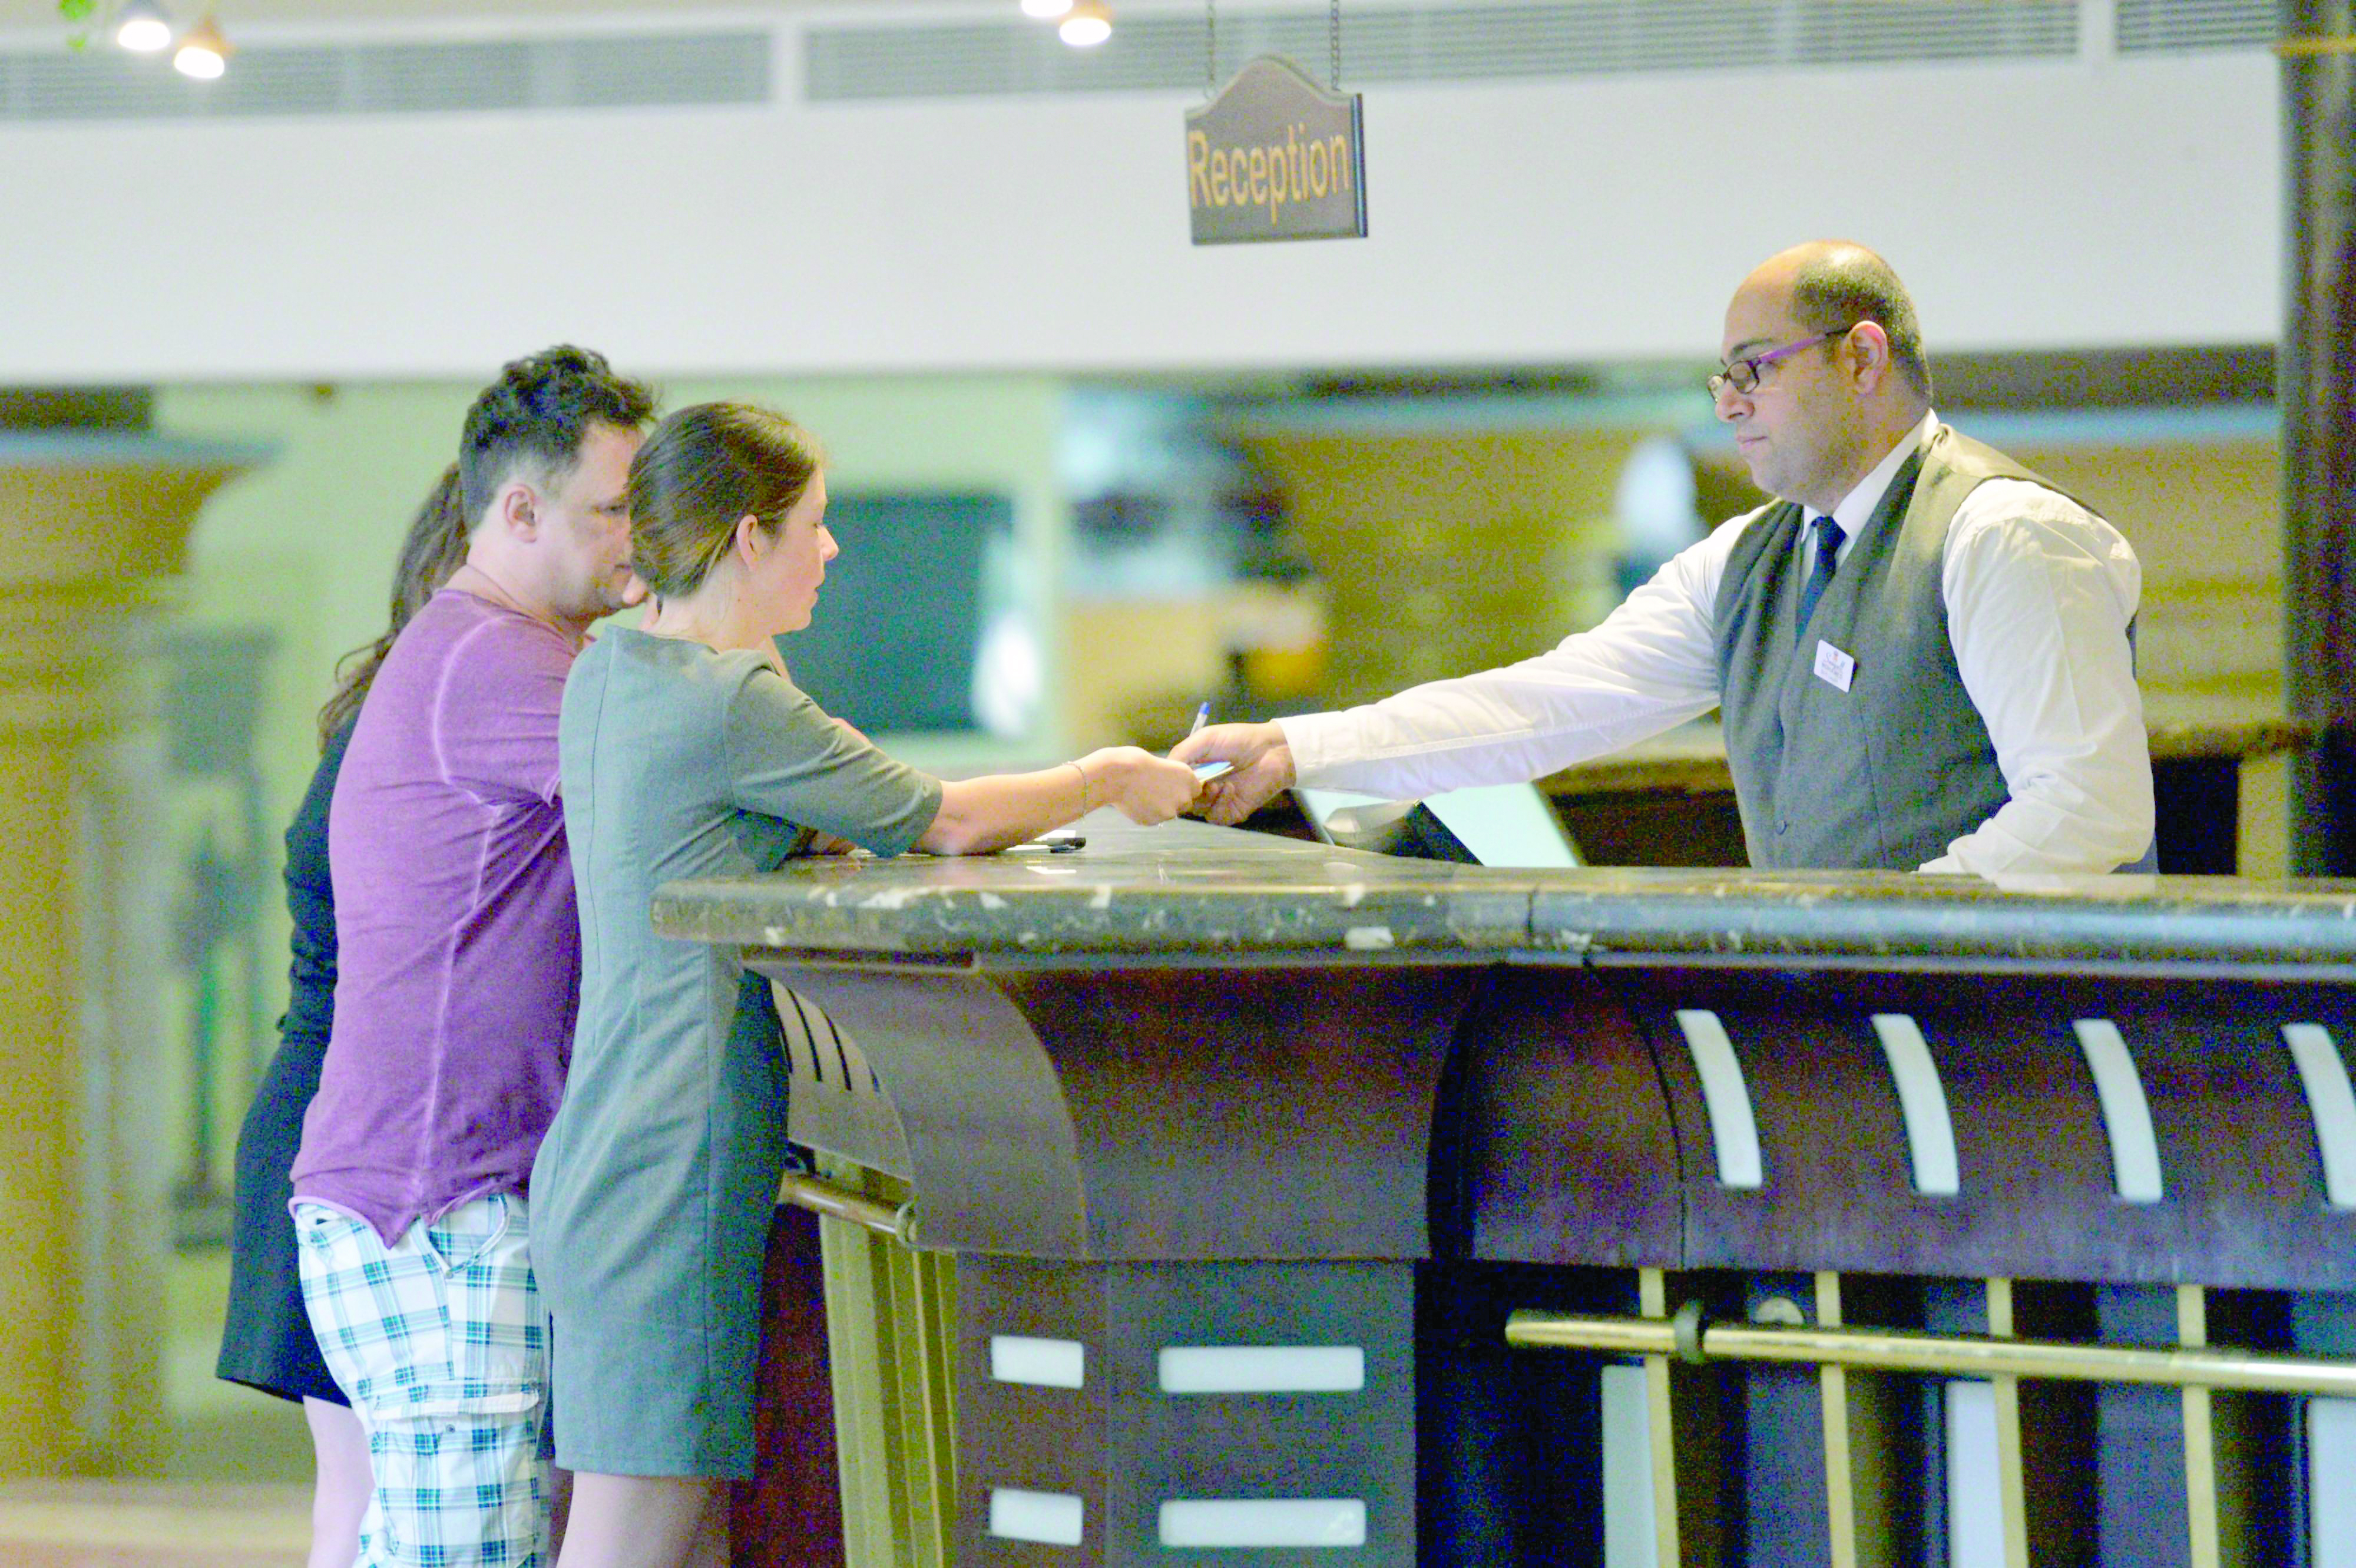 Tourists talk to a receptionist at a hotel in Egypt's Red Sea resort of Hurghada, on February 18. (AFP)